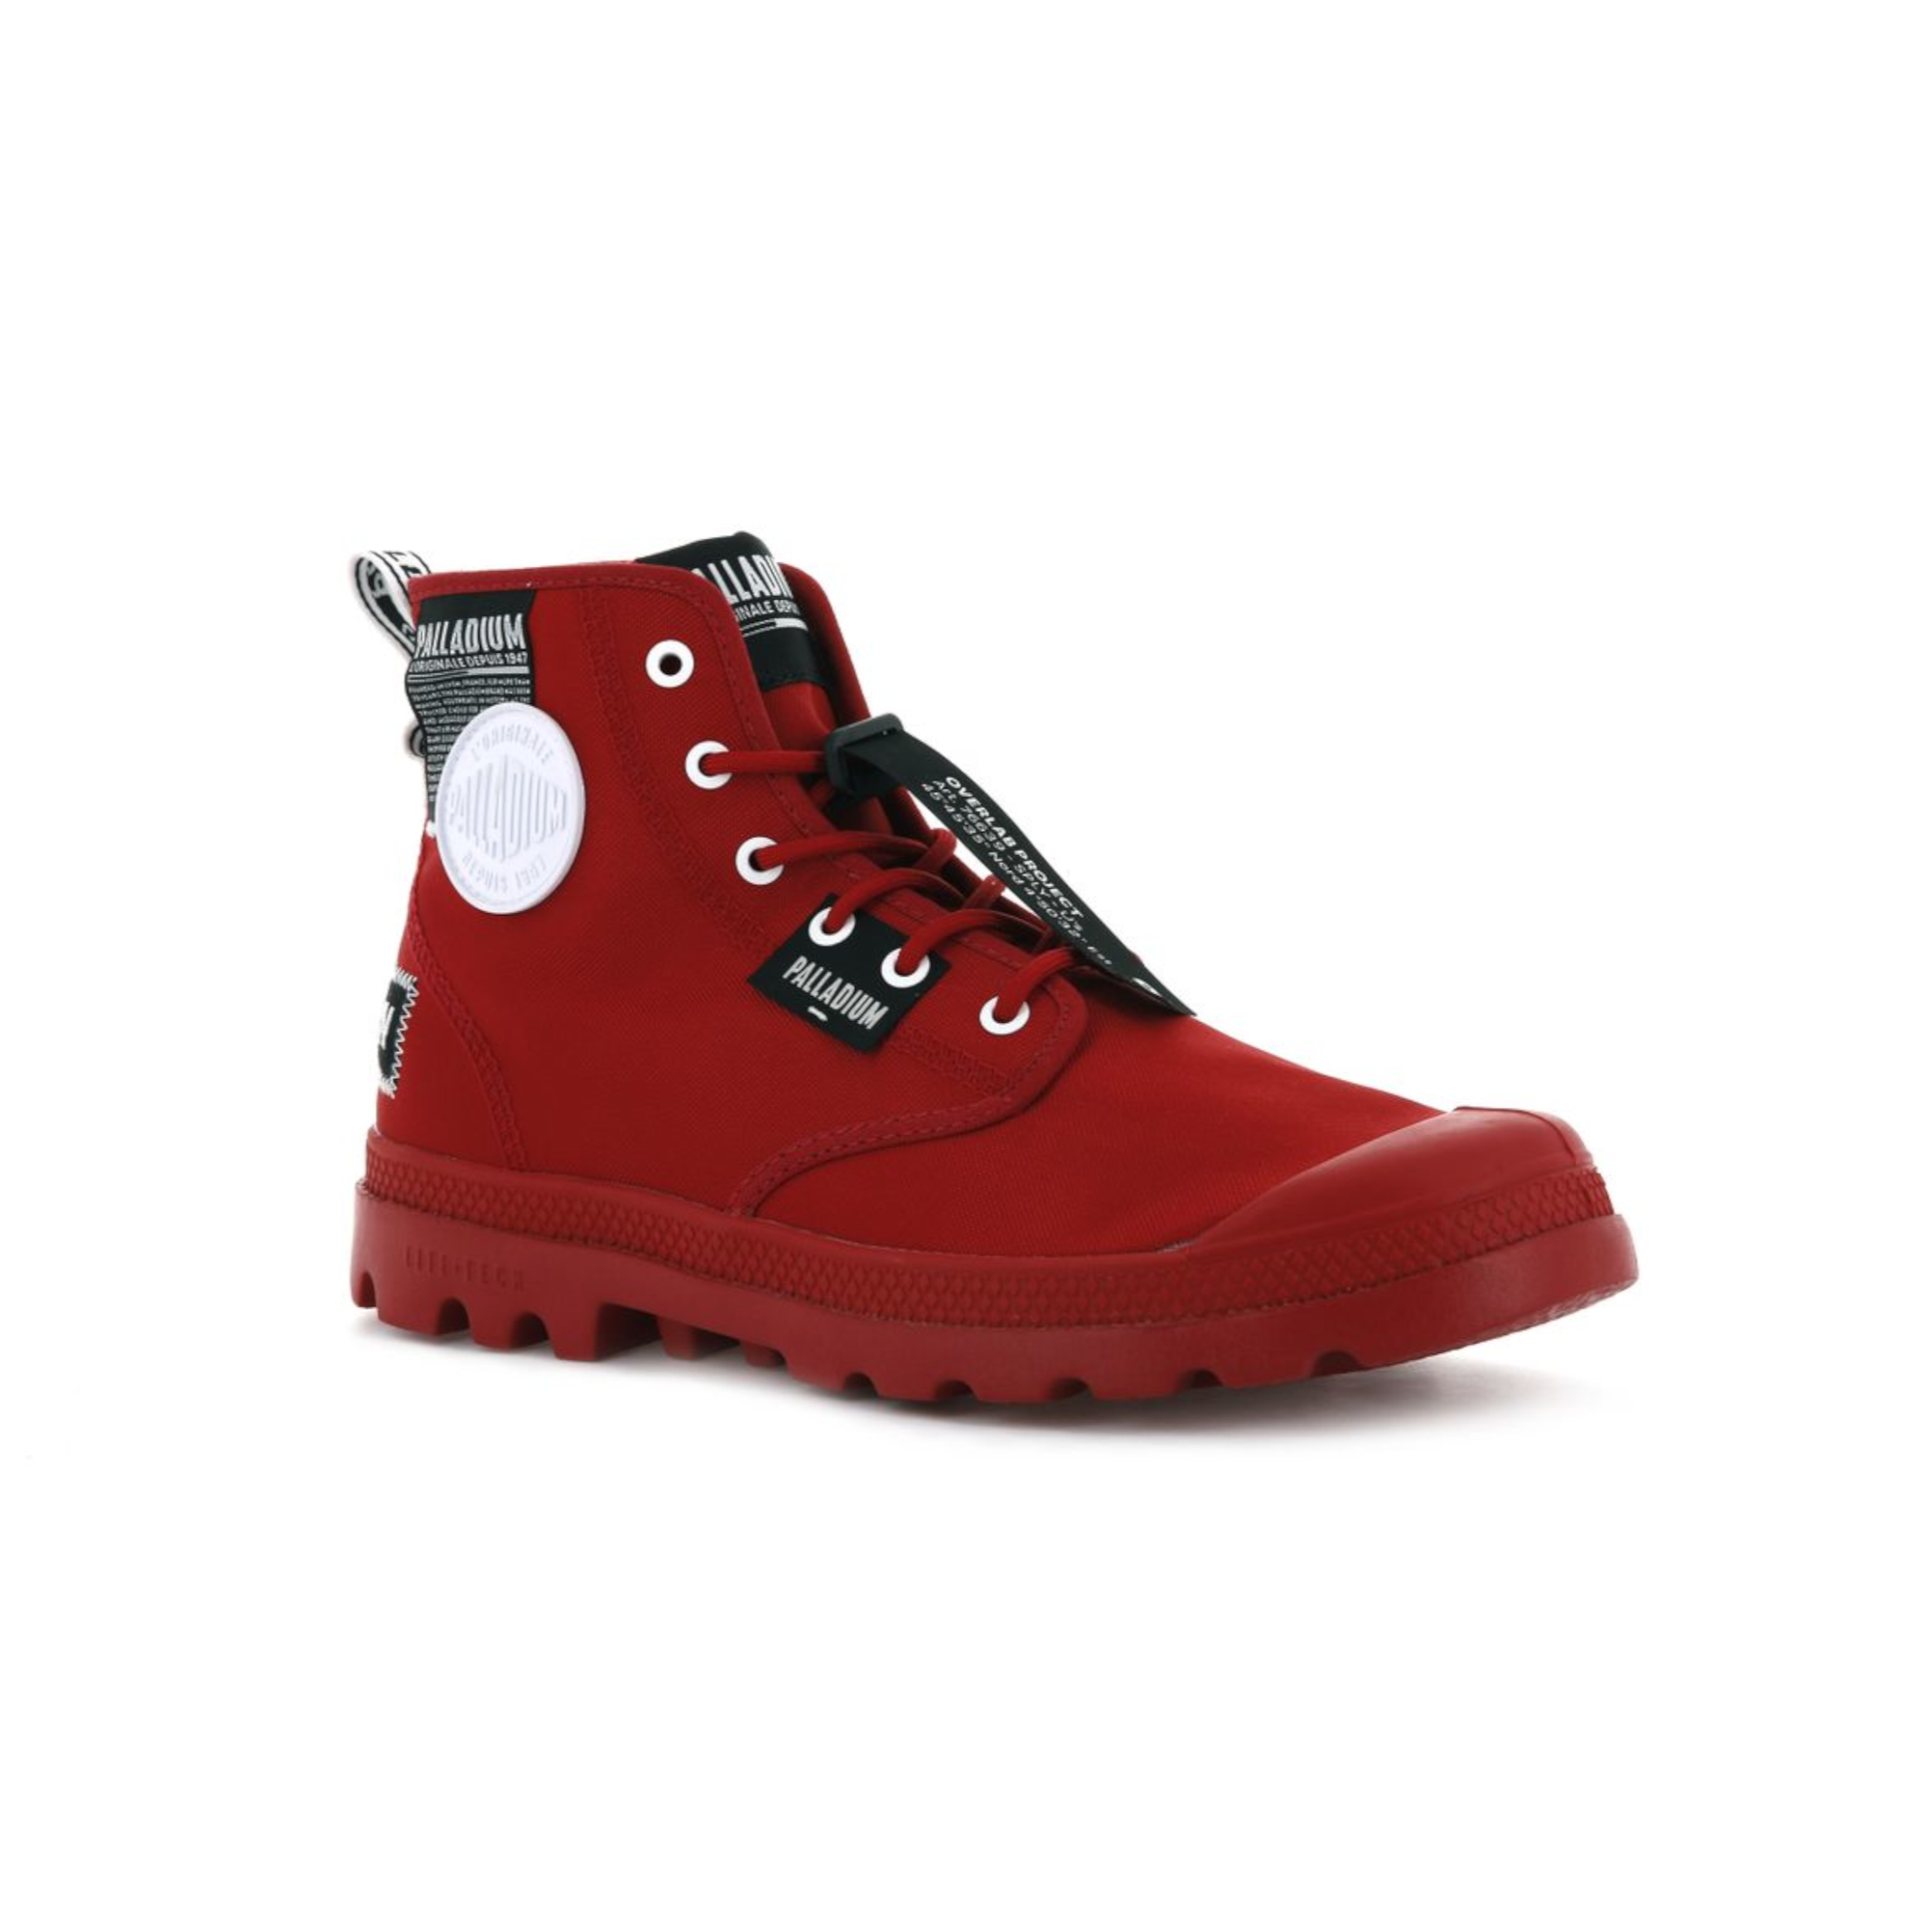 Mono colour red boot with different patches and badges on - Brand Palladium